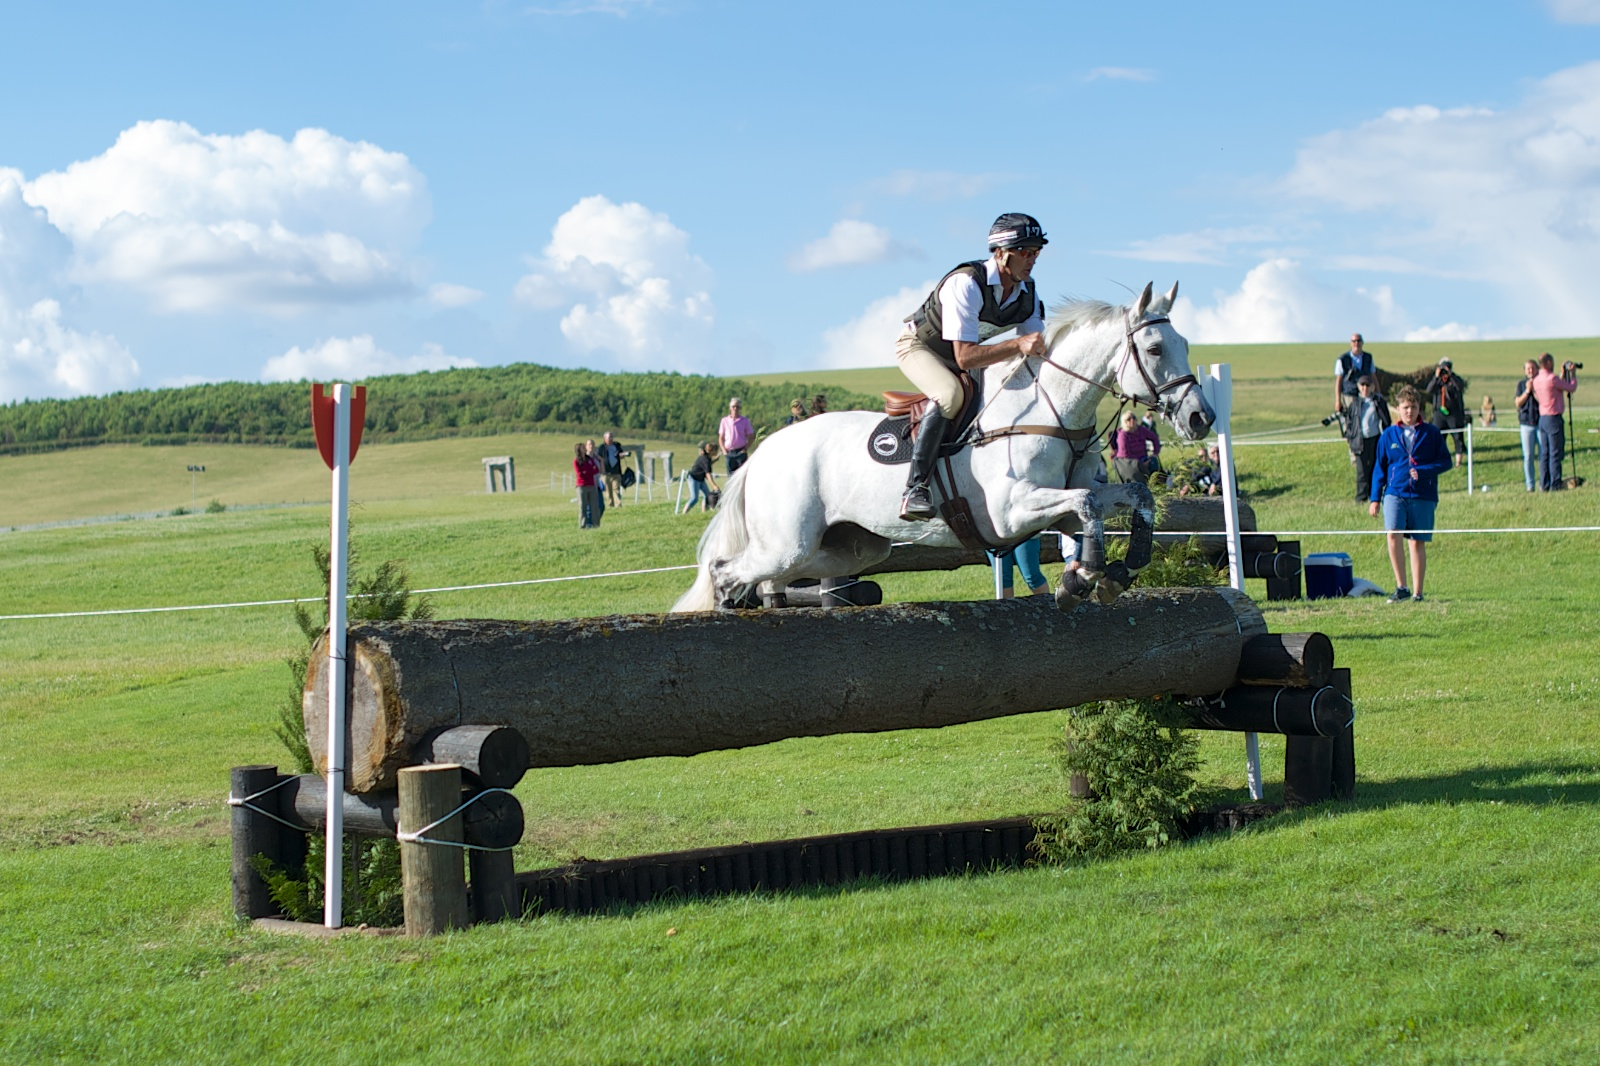 Andrew Nicholson & Avebury Notch Up Their Third Win At Barbury